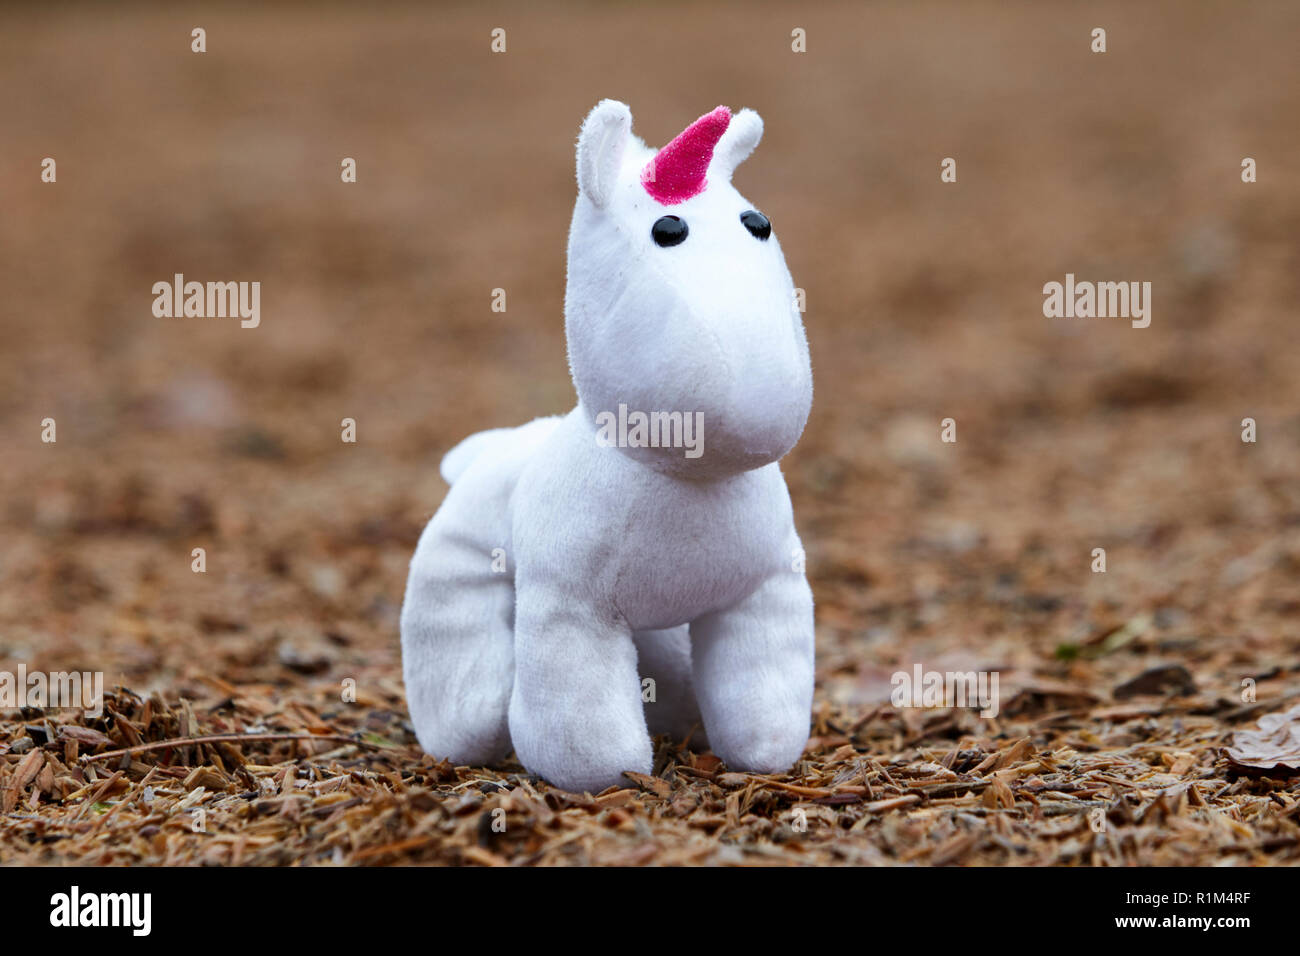 Little girl childs soft toy unicorn lost in a childrens playground - Stock Image